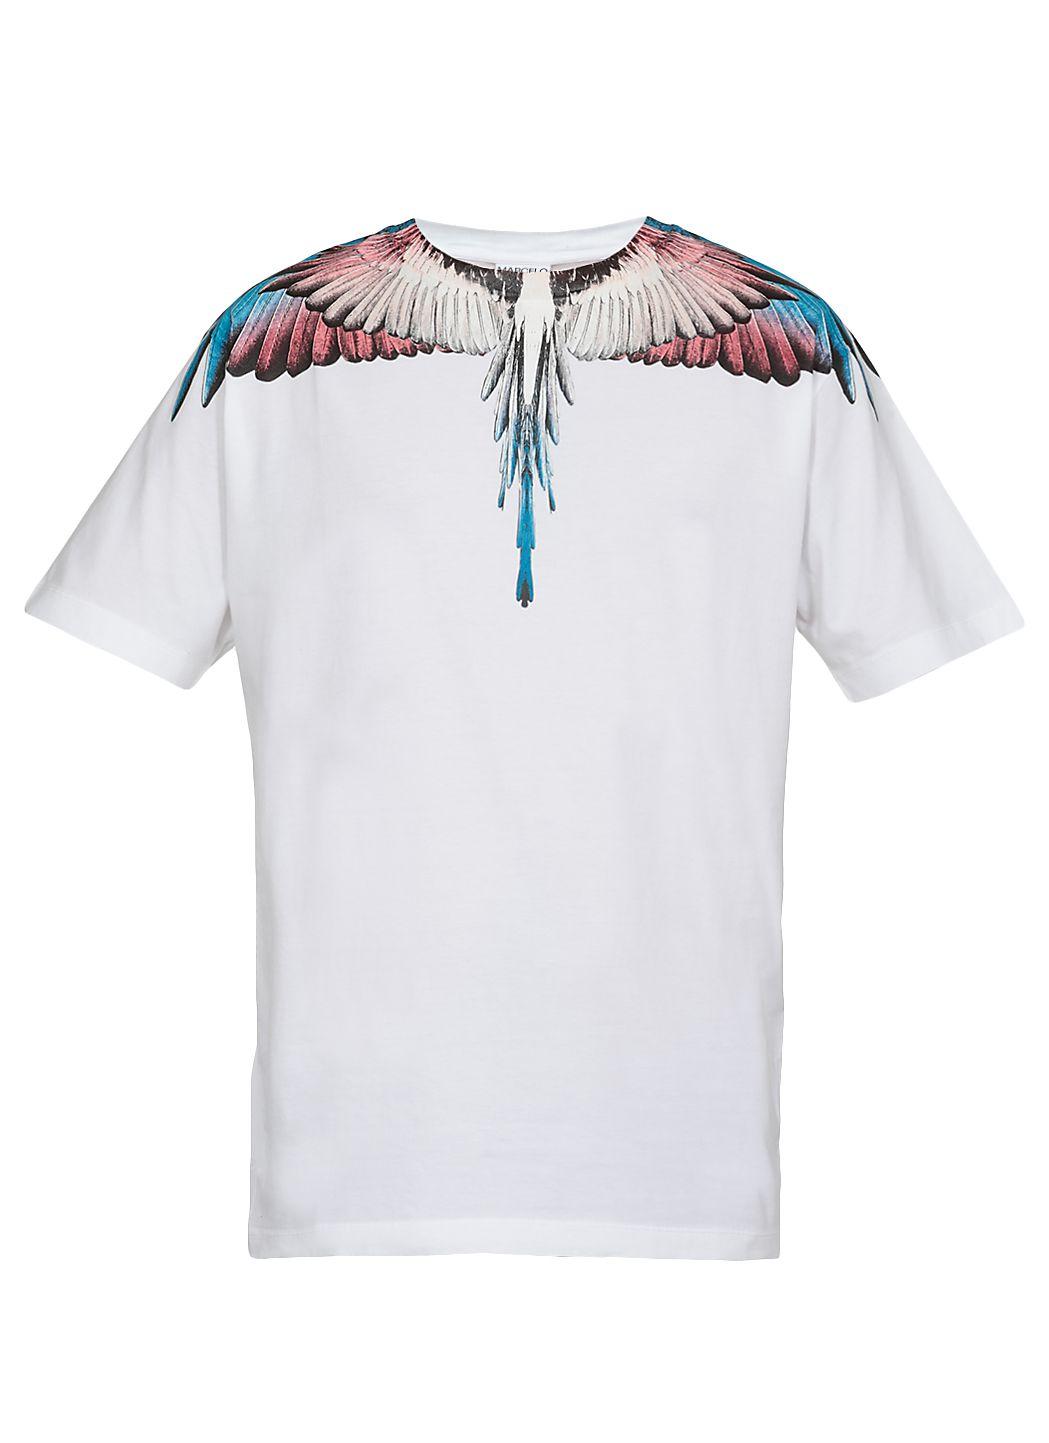 Wings basicT- shirt